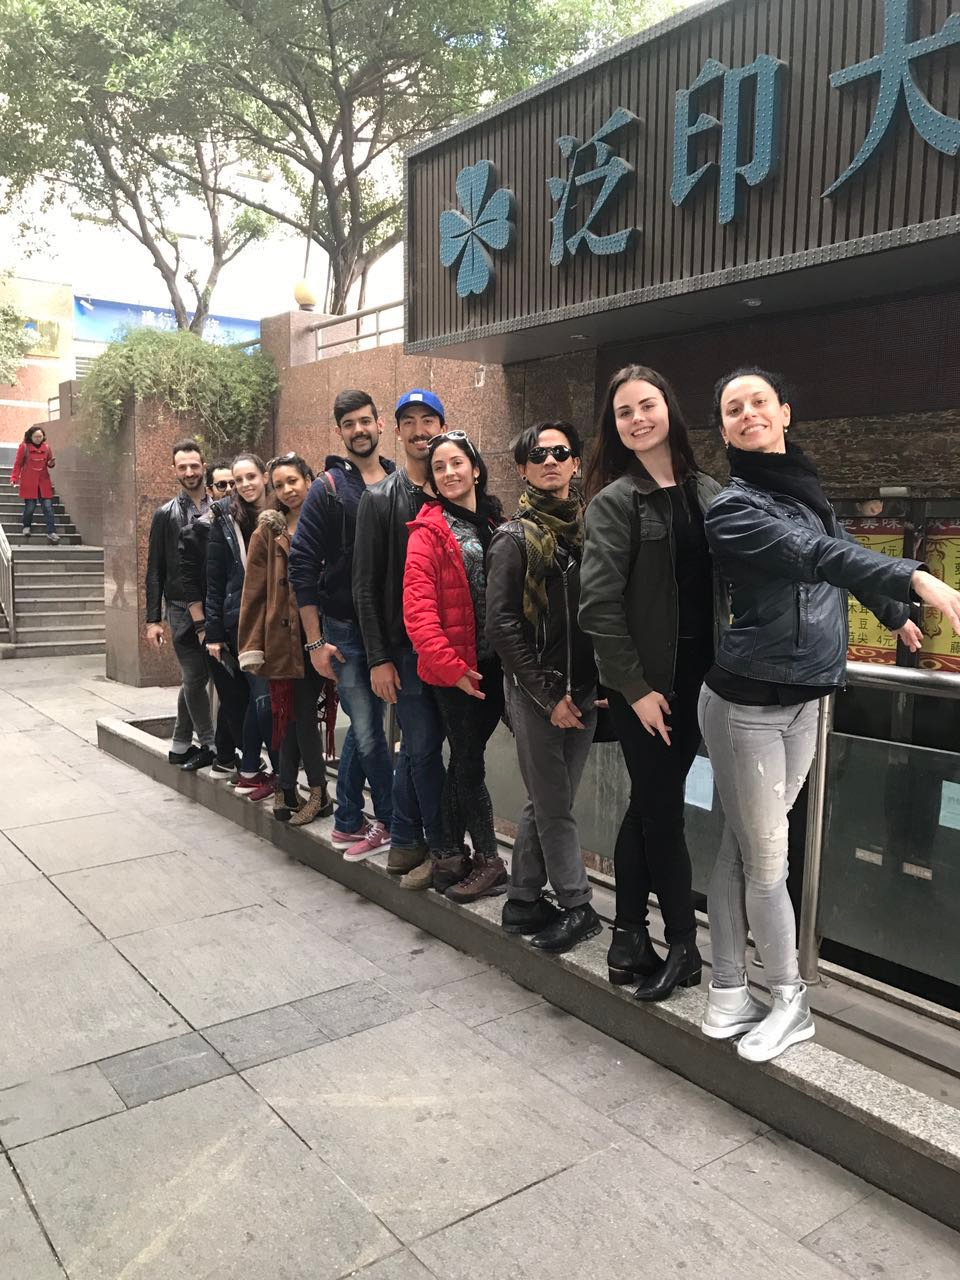 It was wonderful to get a chance to explore the beautiful city of Chongqing, and together we couldn't help but find our fifth position on the street...